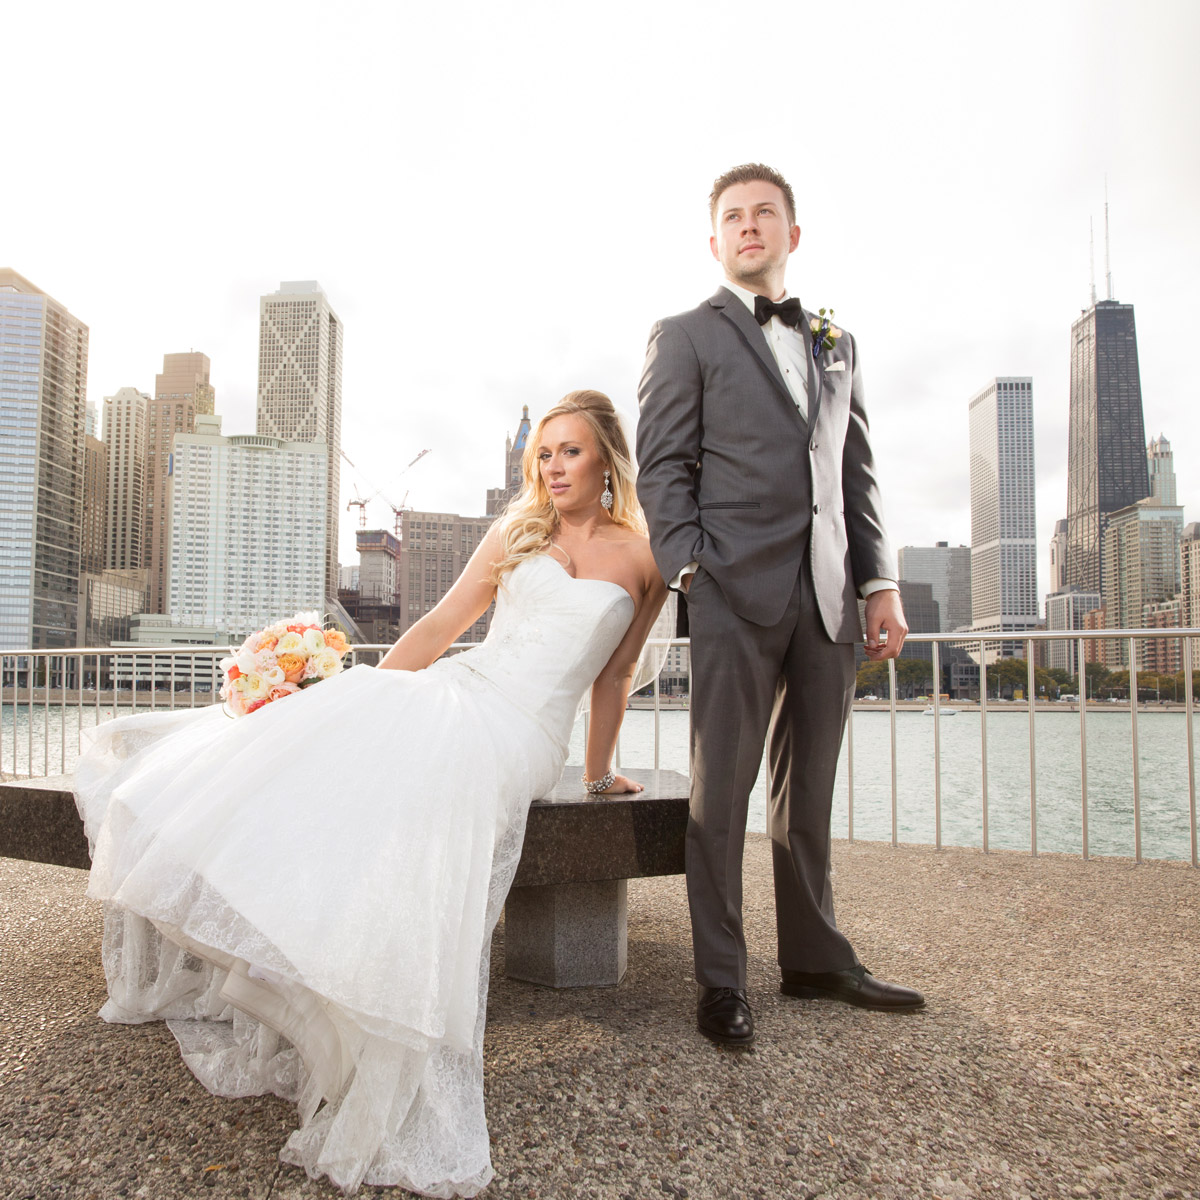 Chicago Beach Nature Outdoor Weddings